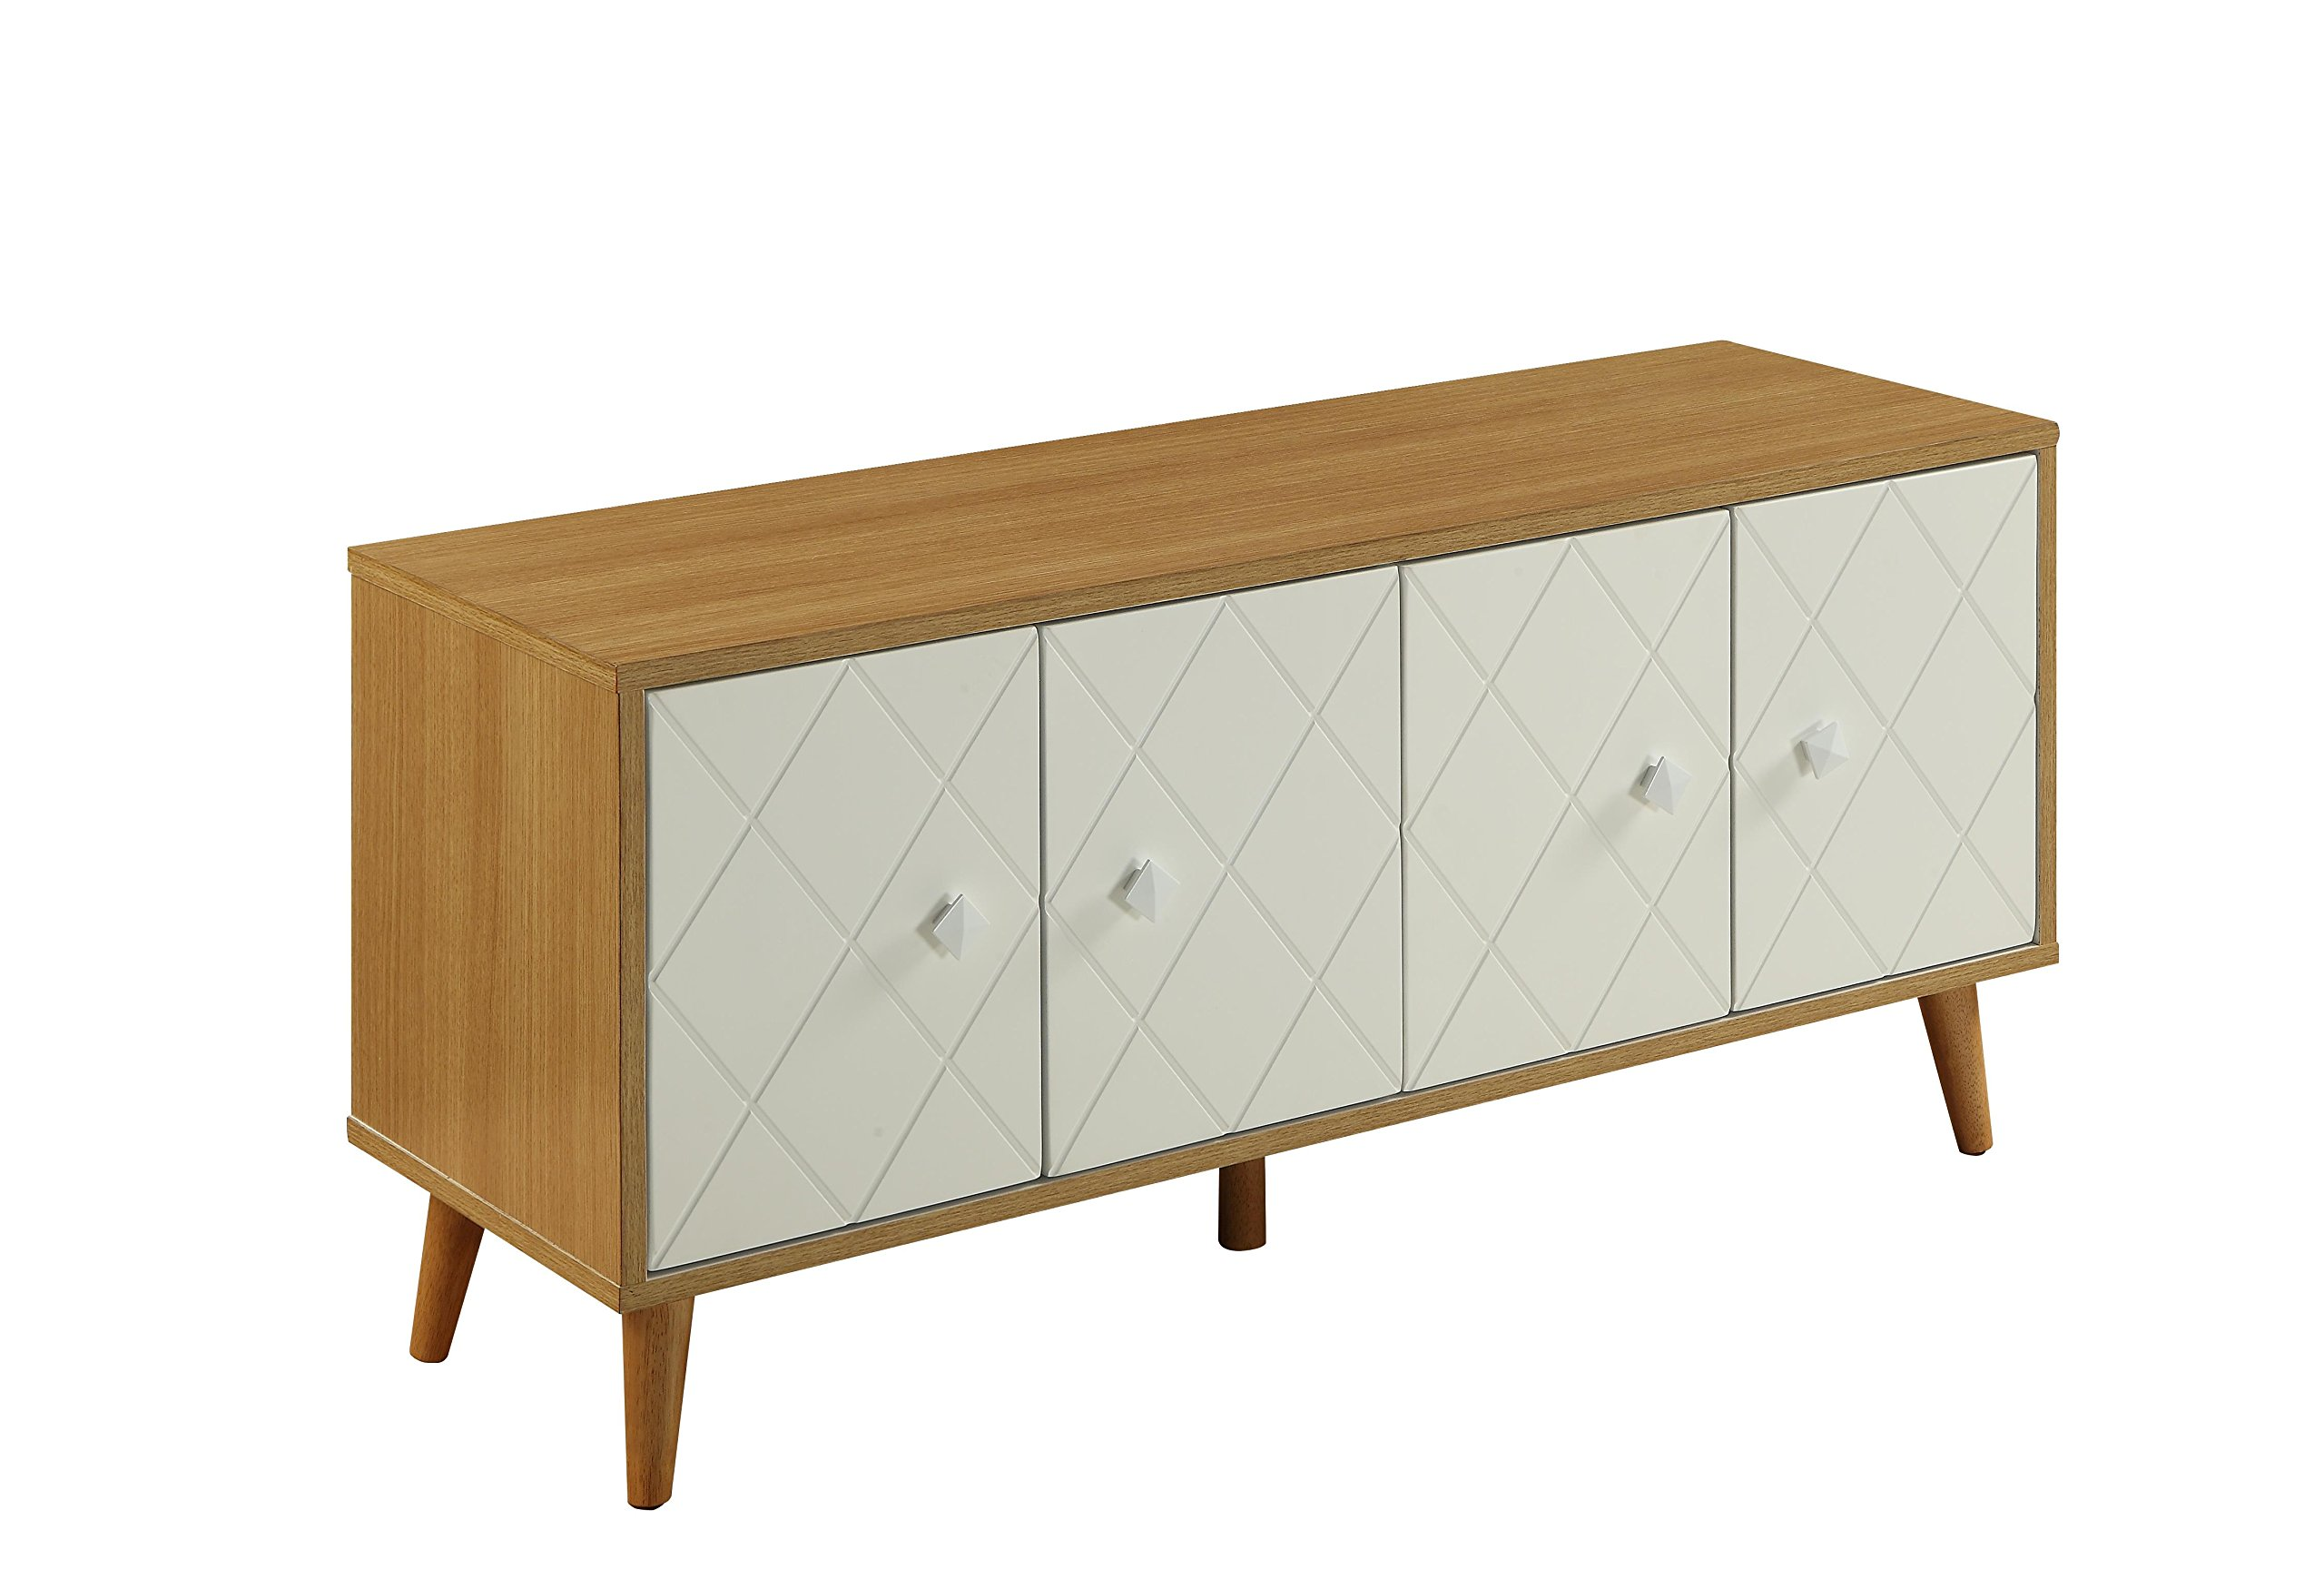 ACME Furniture 90165 Airlia Natural and White Console Table